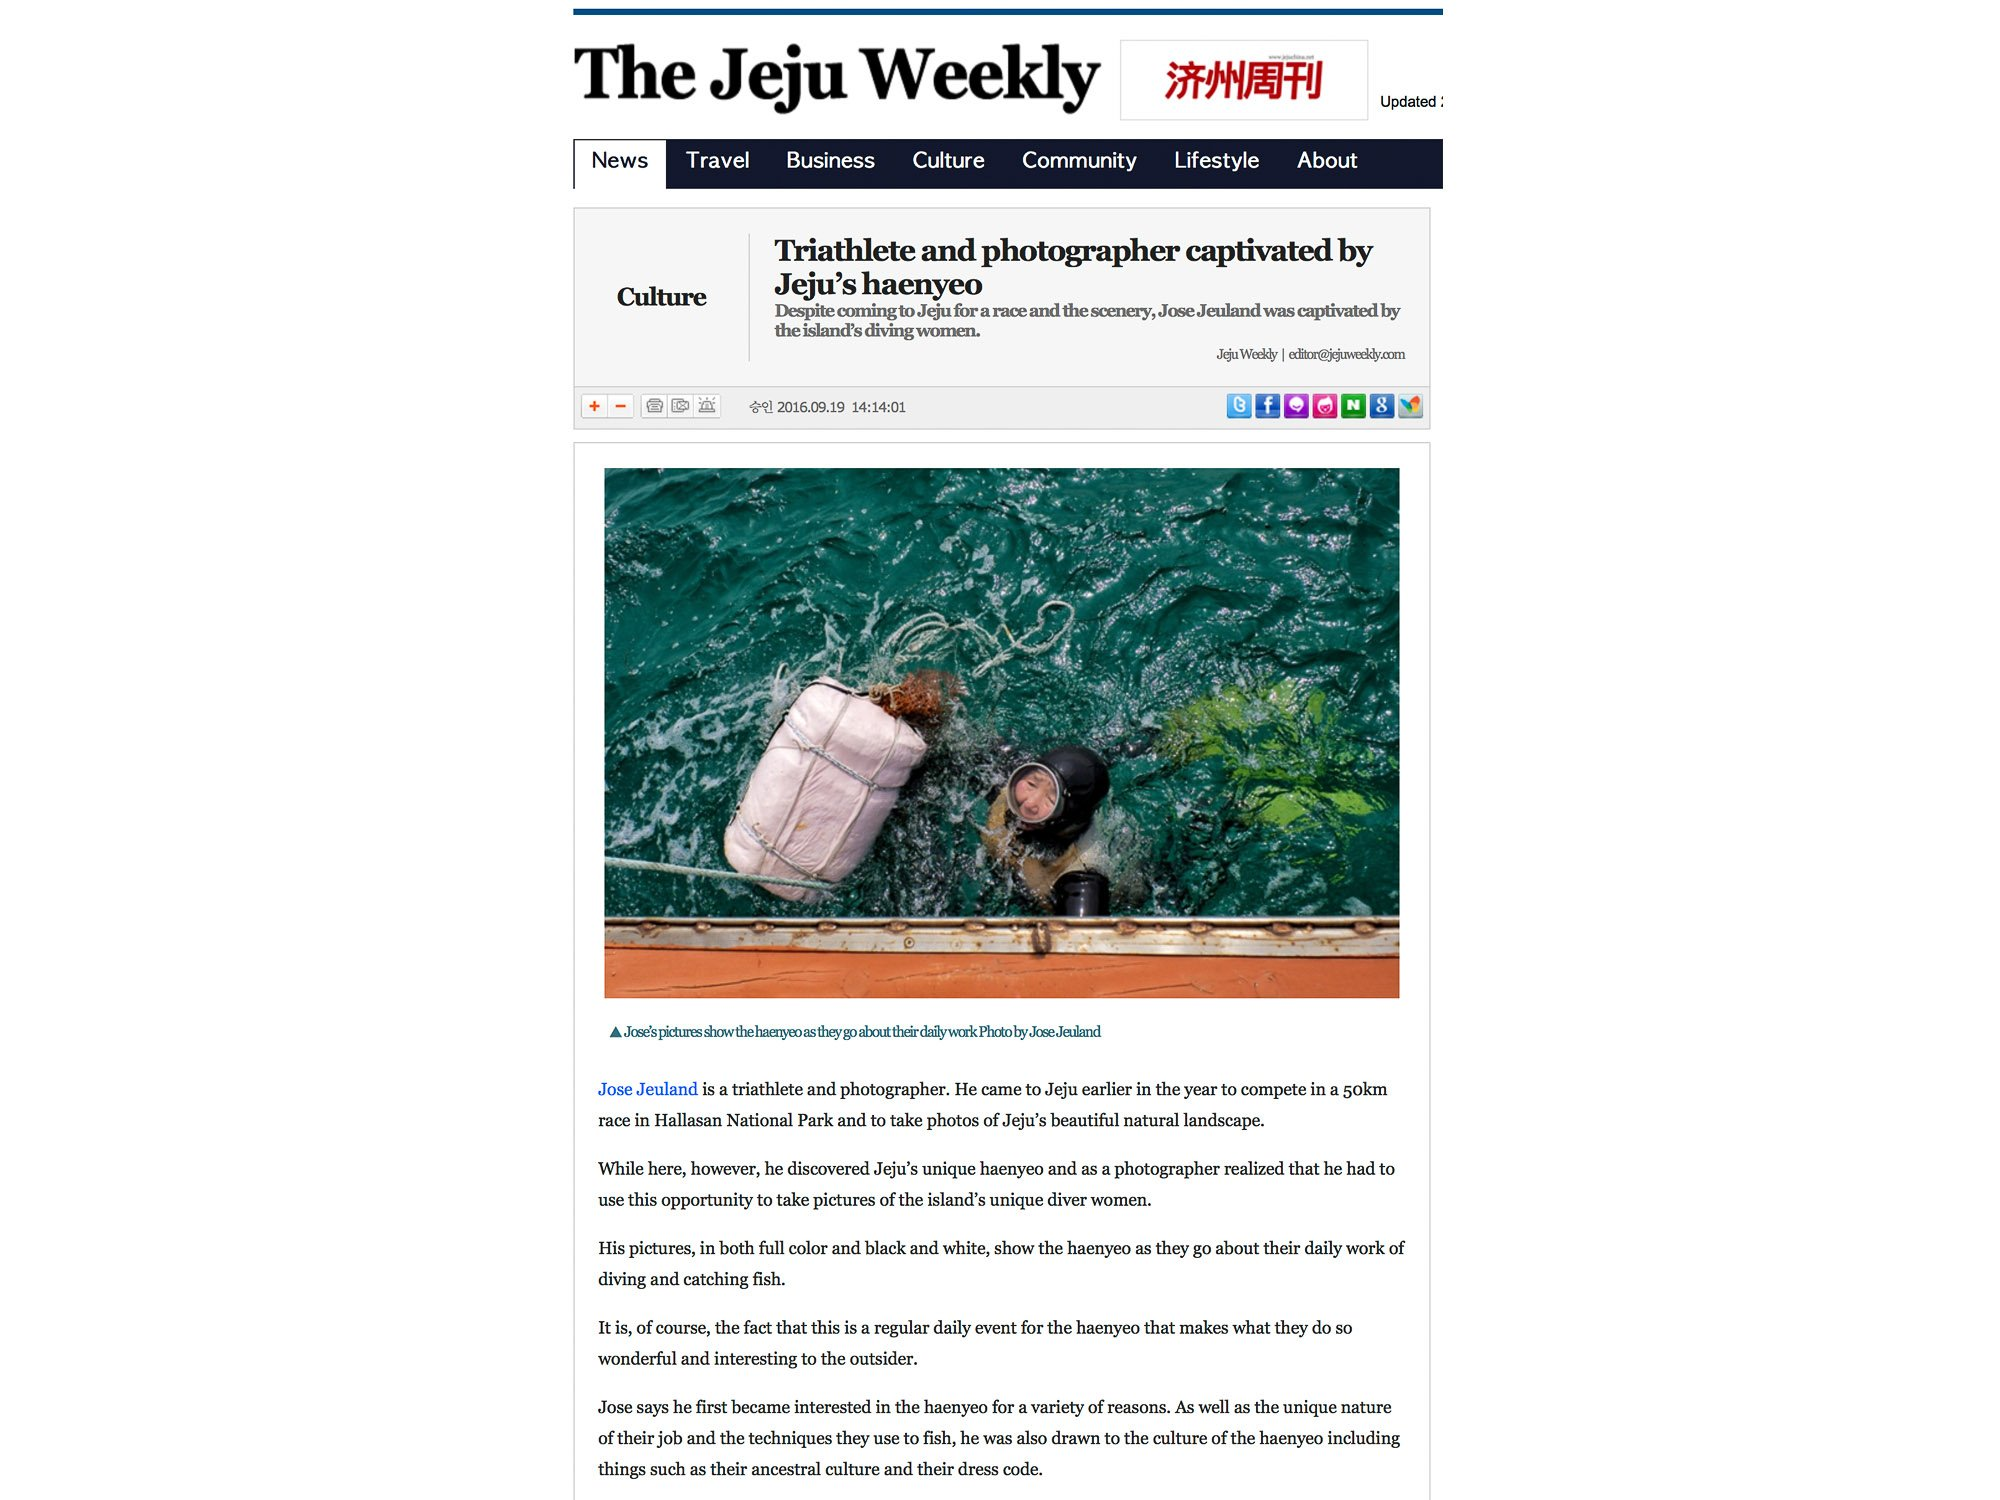 Jose Jeuland JeJu Weekly Haenyeo Article Photographer Triathlete newspaper